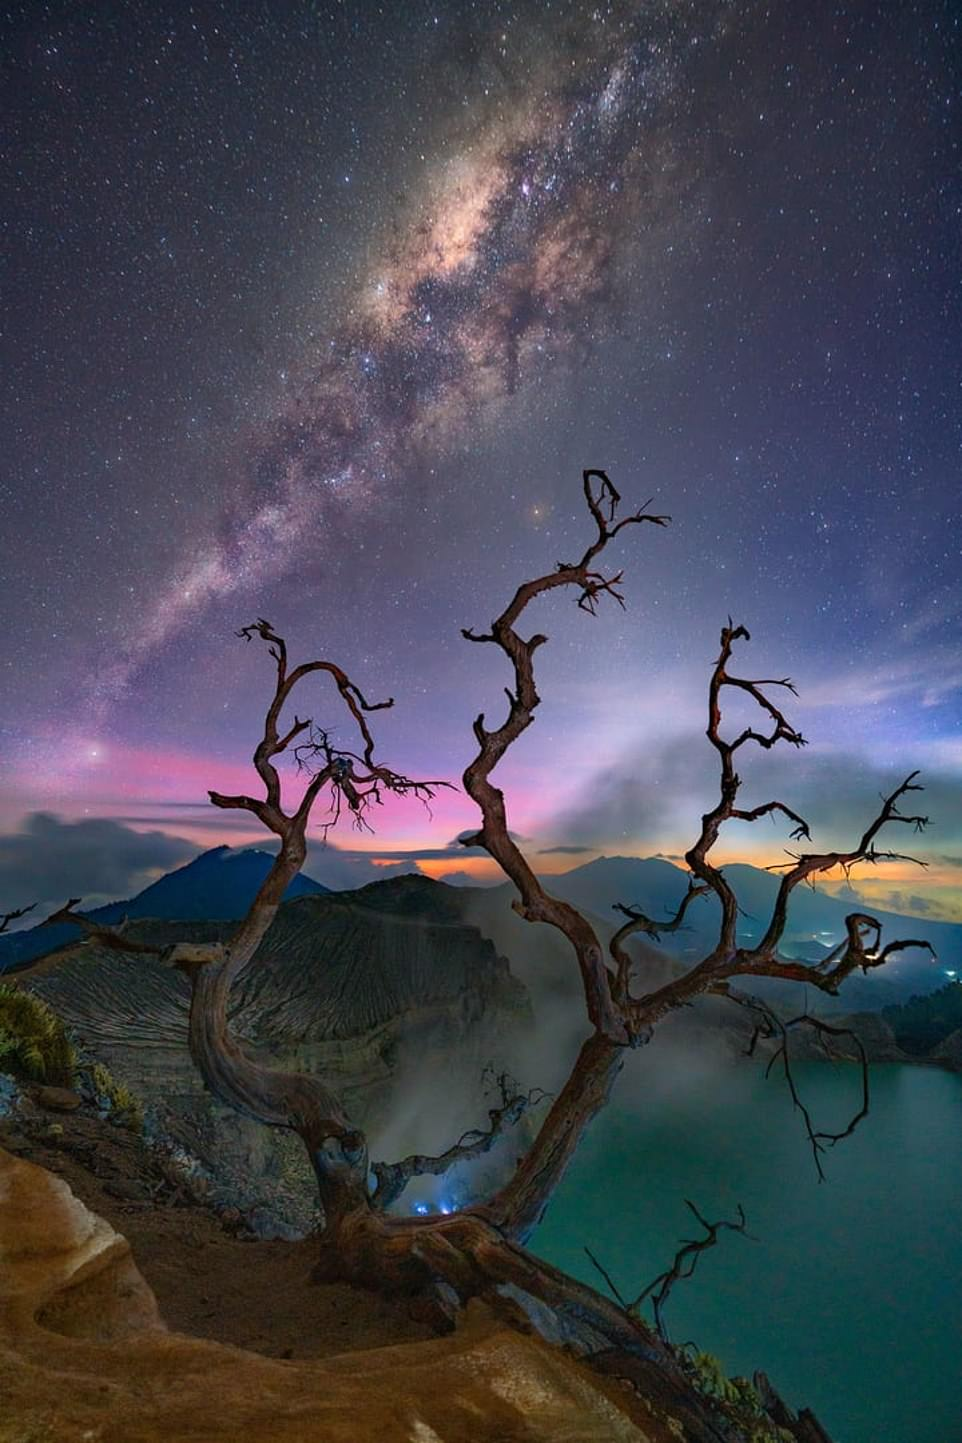 'Around dead trees' — by Gary Bhaztara inJava, Indonesia, whosaid: 'I took this shot of the Milky Way facing south after the sun set in the west. At the same time, the blue fire was burning just below the mountain while the Milky Way kept rising'